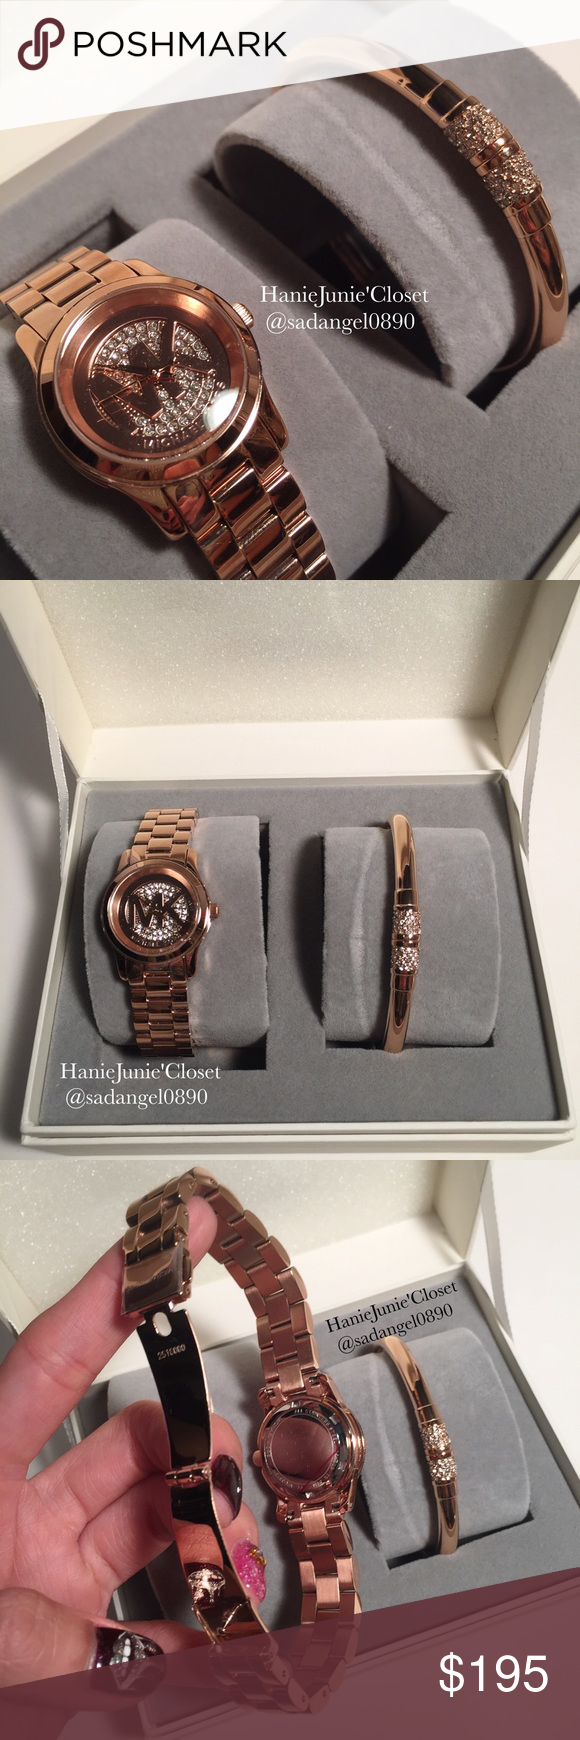 🌈🦄MICHAEL KORS ROSÉGOLD GLITZ WATCH SET ❥Color: Roségold  ❥Material: stainless steel ❥Watch case:26mm, bracelet: one size, magnet lock.  ❥Real photo 📷 taken from me ❥Brand new✨, never used. 100% authentic  ❥Pack with care📦and ship✈️right away ❥Freegift🎁included with purchase $100+ ❥🚫TRADE🚫HOLD🚫LOWBALL ❥10% OFF FOR BUNDLES ❥REASONABLE OFFERS WILL BE ACCEPTED. Follow me on IG: @hanie.junie Michael Kors Accessories Watches